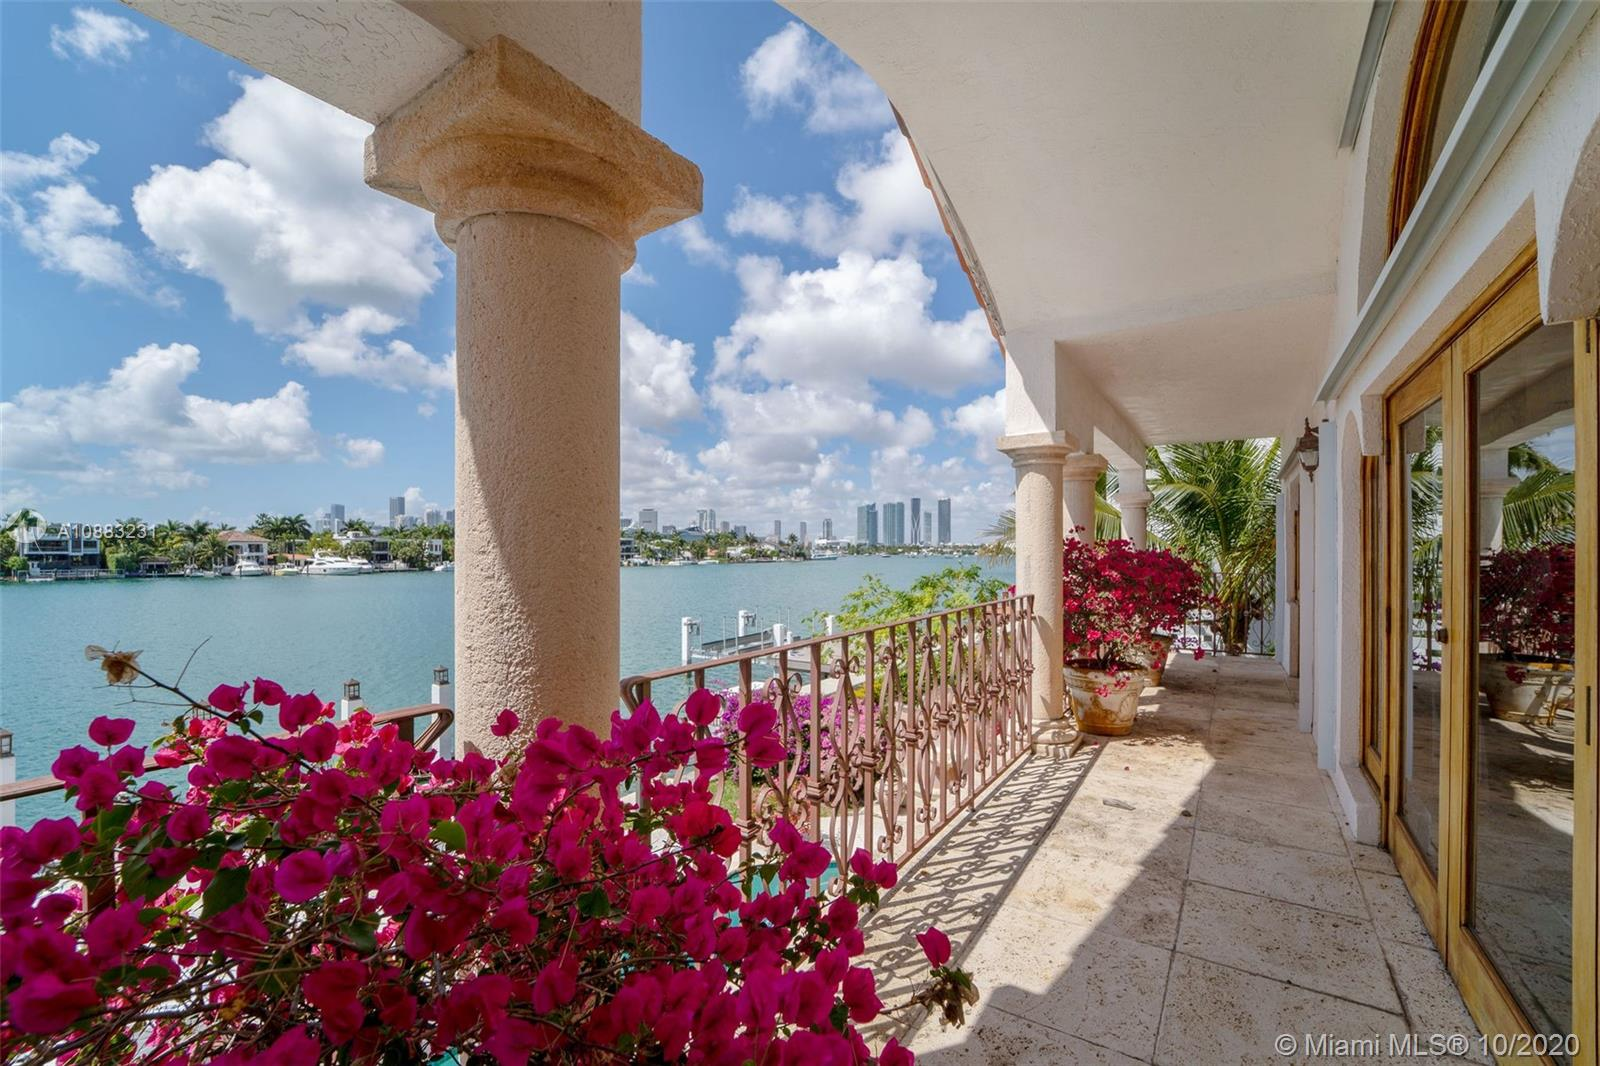 Boater's paradise! Mediterranean gem located in the serene and gated South Hibiscus Island. With southern exposure and unobstructed views of the Miami skyline, this is an absolute must see. 4 bedrooms and 4 baths, plus den masterfully spread out over 4,567 square feet of living area. Chef's kitchen, original cuban tile and large outdoor terrace. Enjoy sweeping bay views from the expansive Master suite balcony and sitting area. A private dock with 60 Feet of frontage completes this magnificent home situated minutes from S Beach, Downtown & the Miami International Airport.